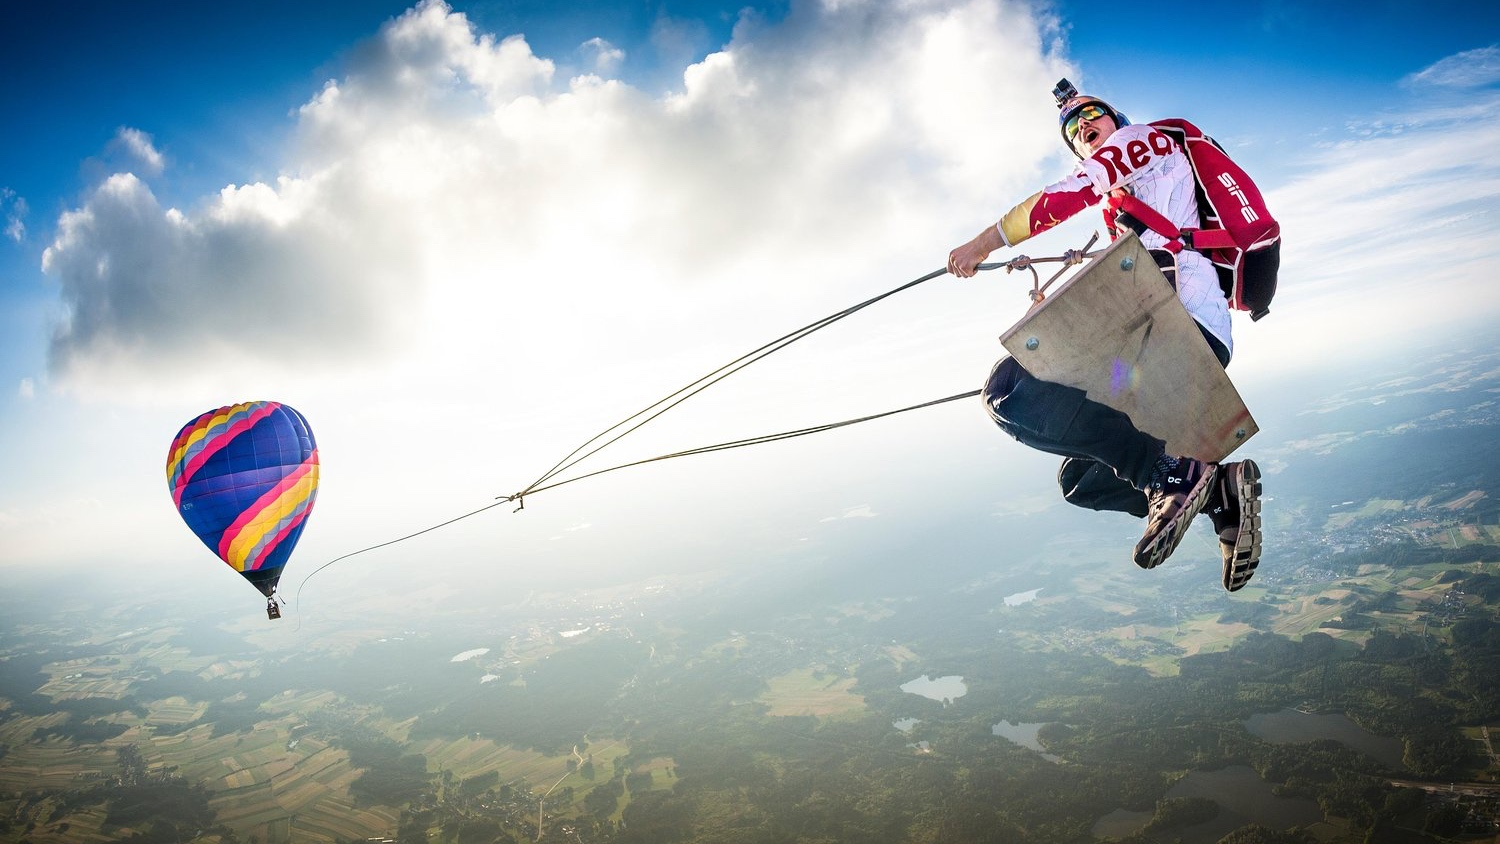 Red Bull extreme sports hot air balloon brand strategy